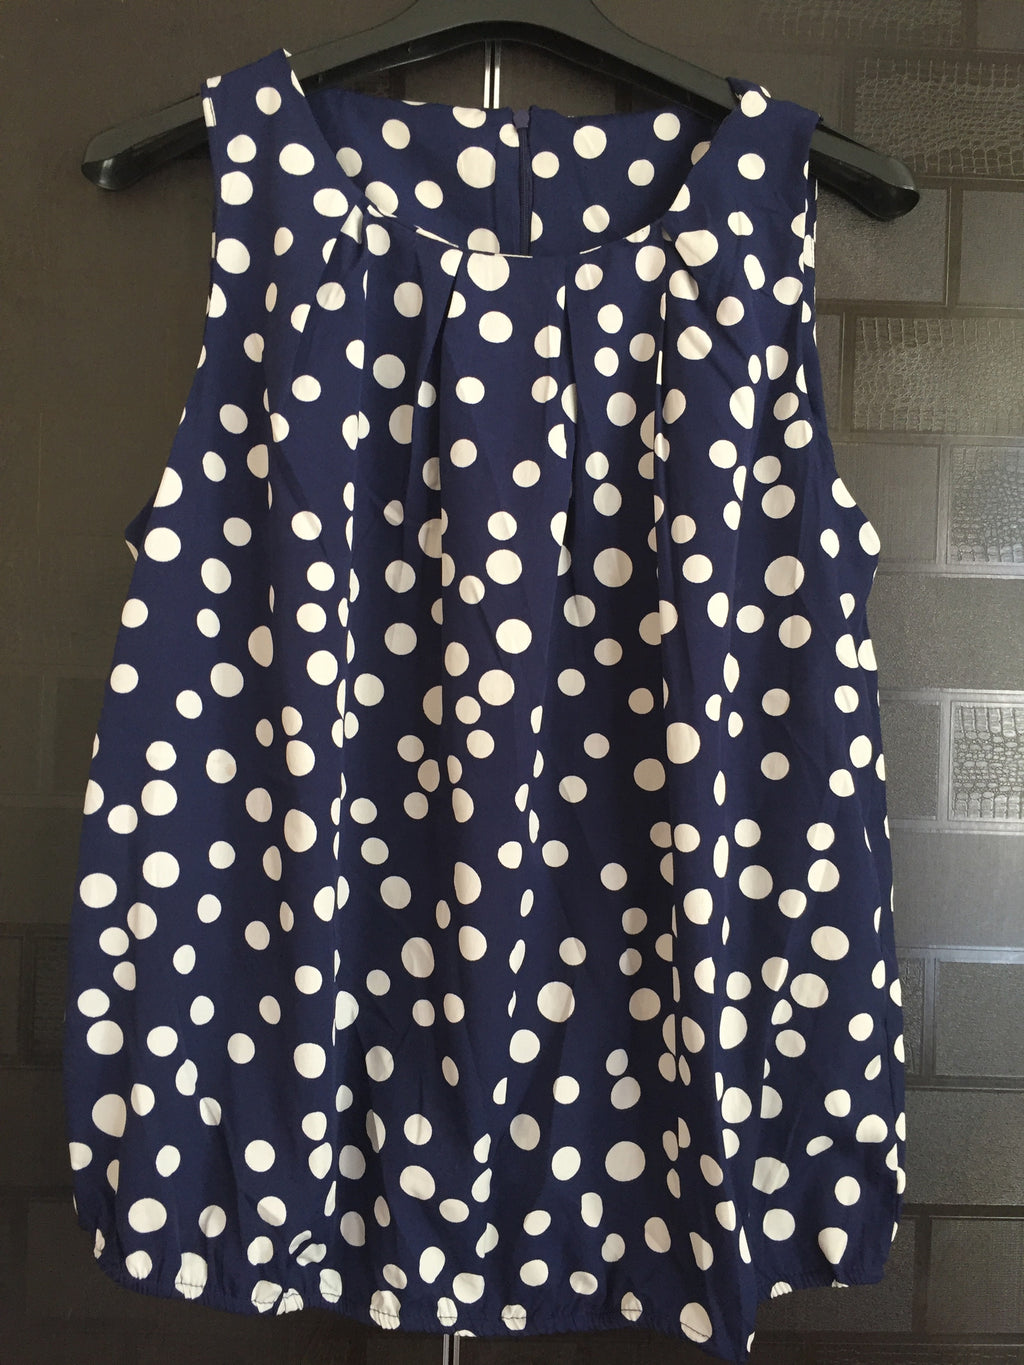 Blue and White Polka Dotted Balloon Top - #FTFY - For The Fun Years